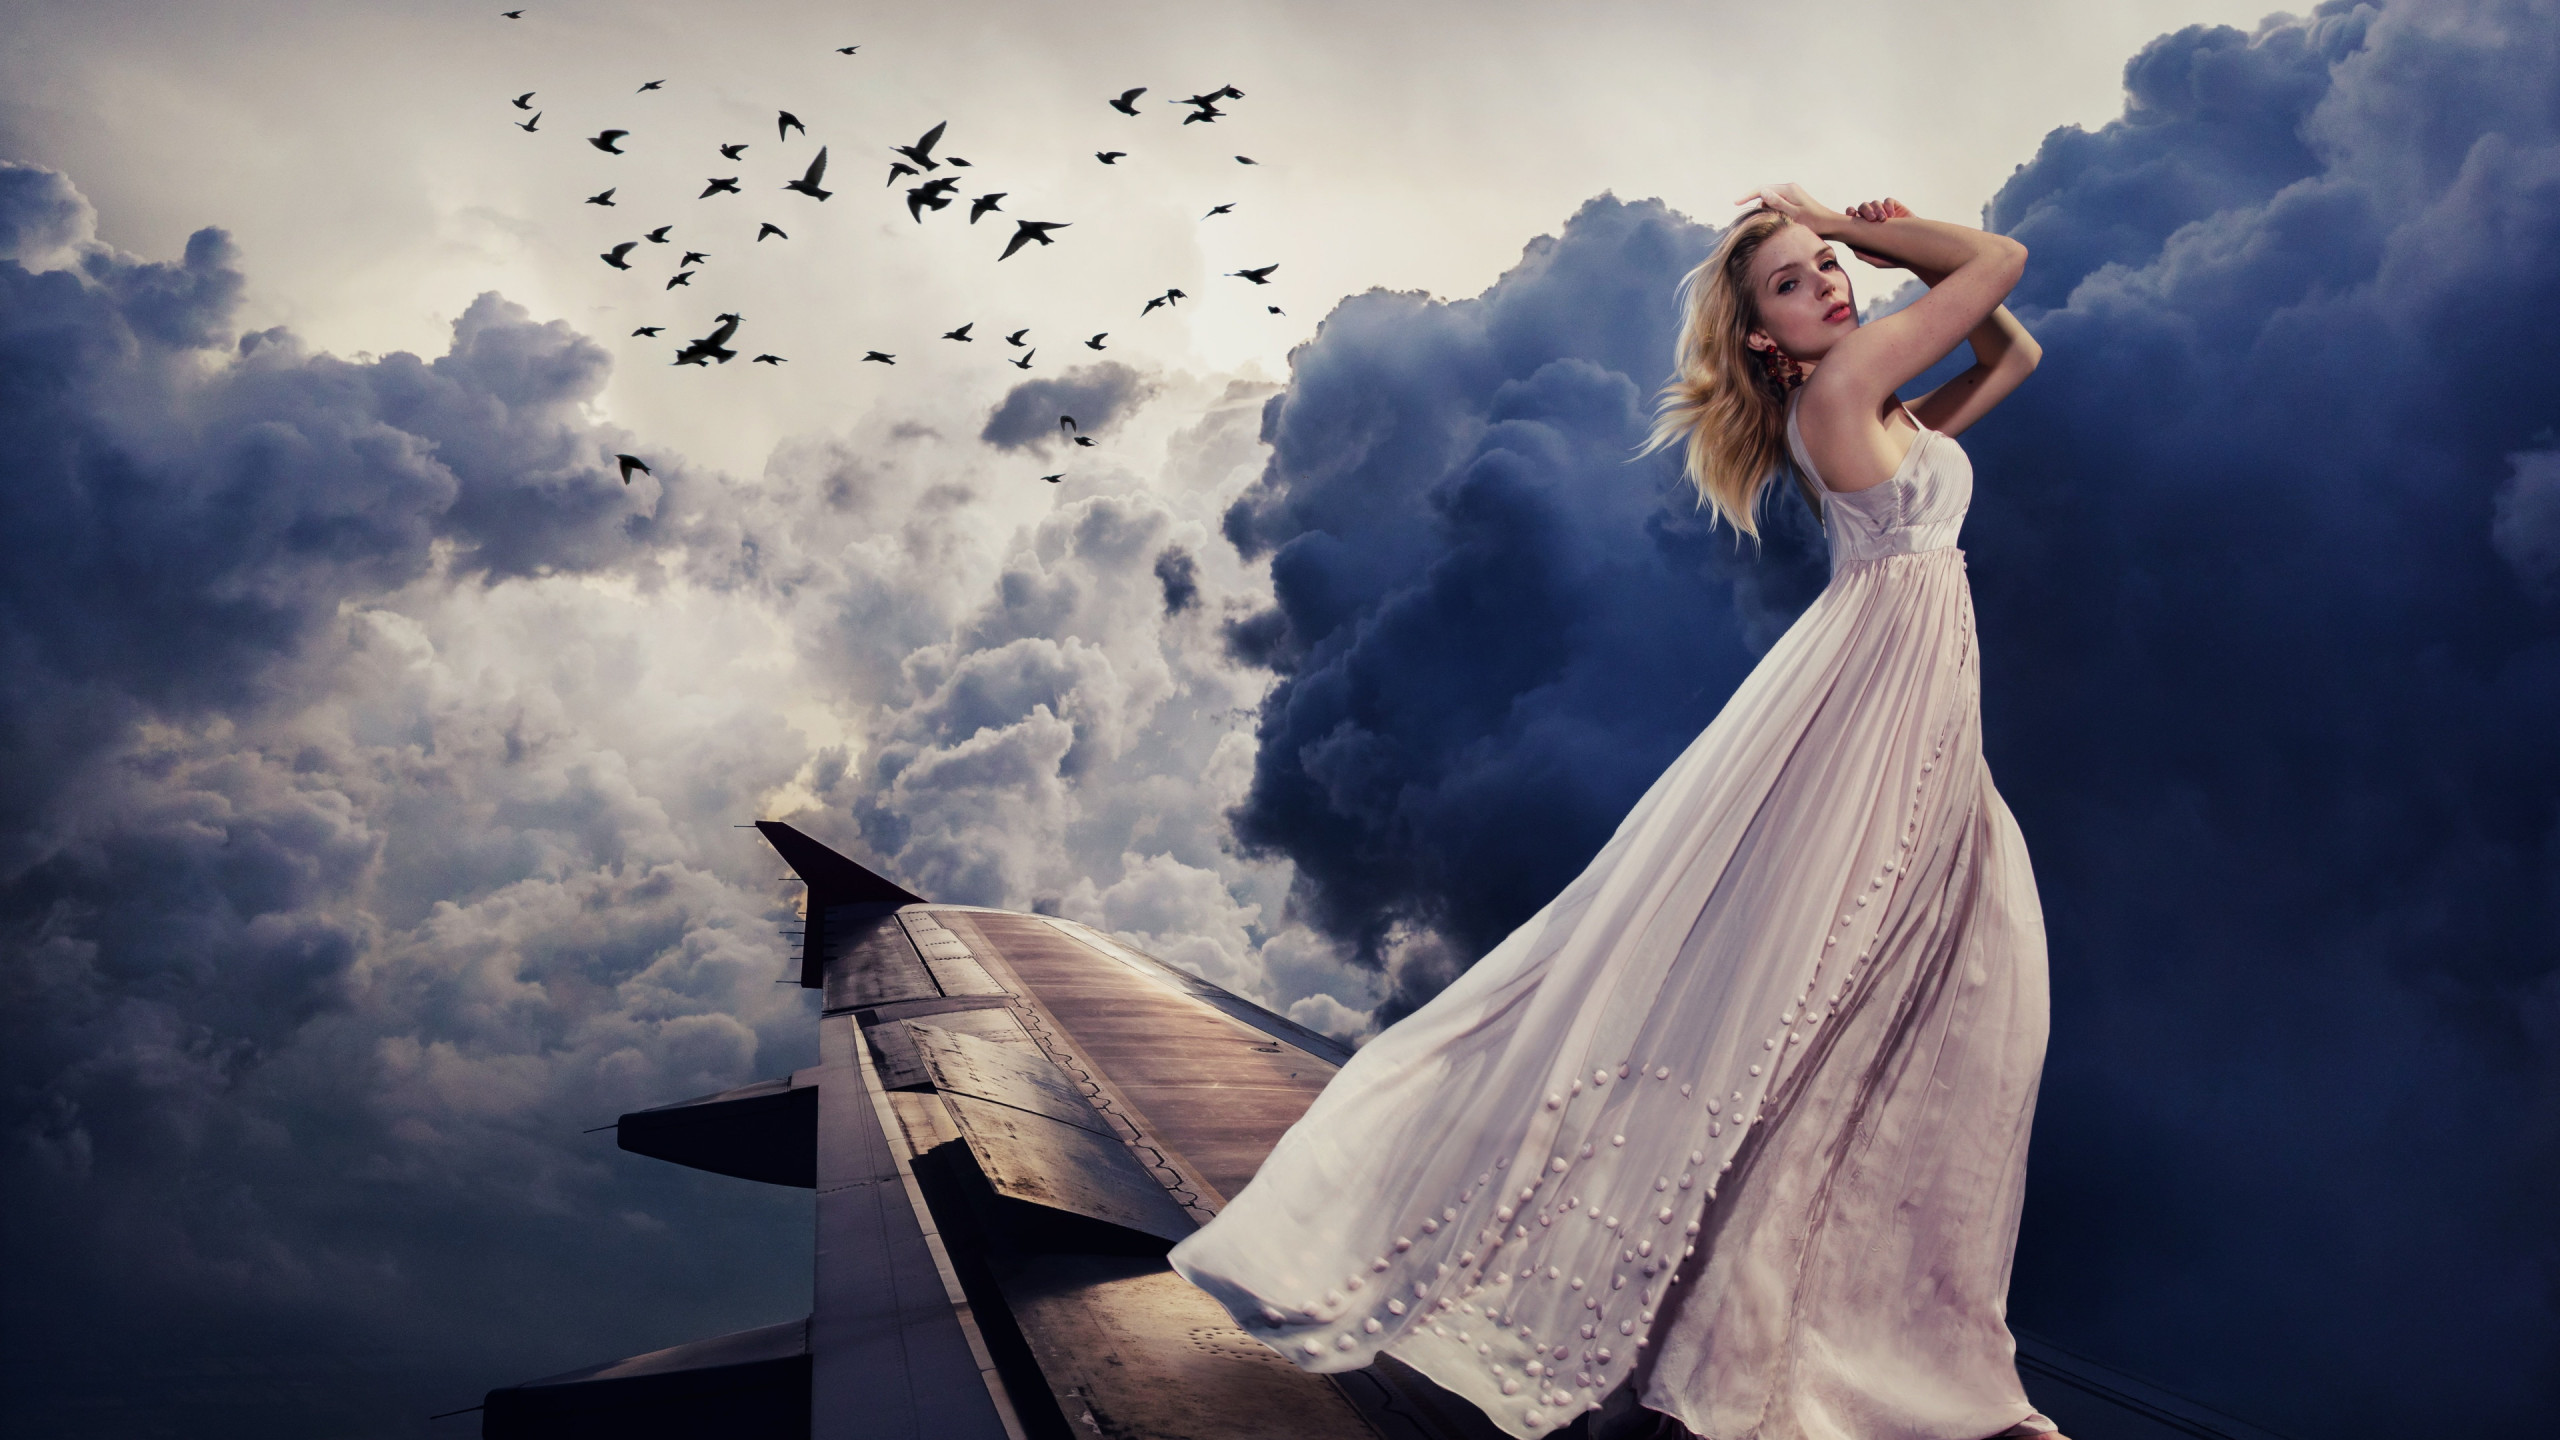 Beautiful girl on the airplane wing wallpaper 2560x1440